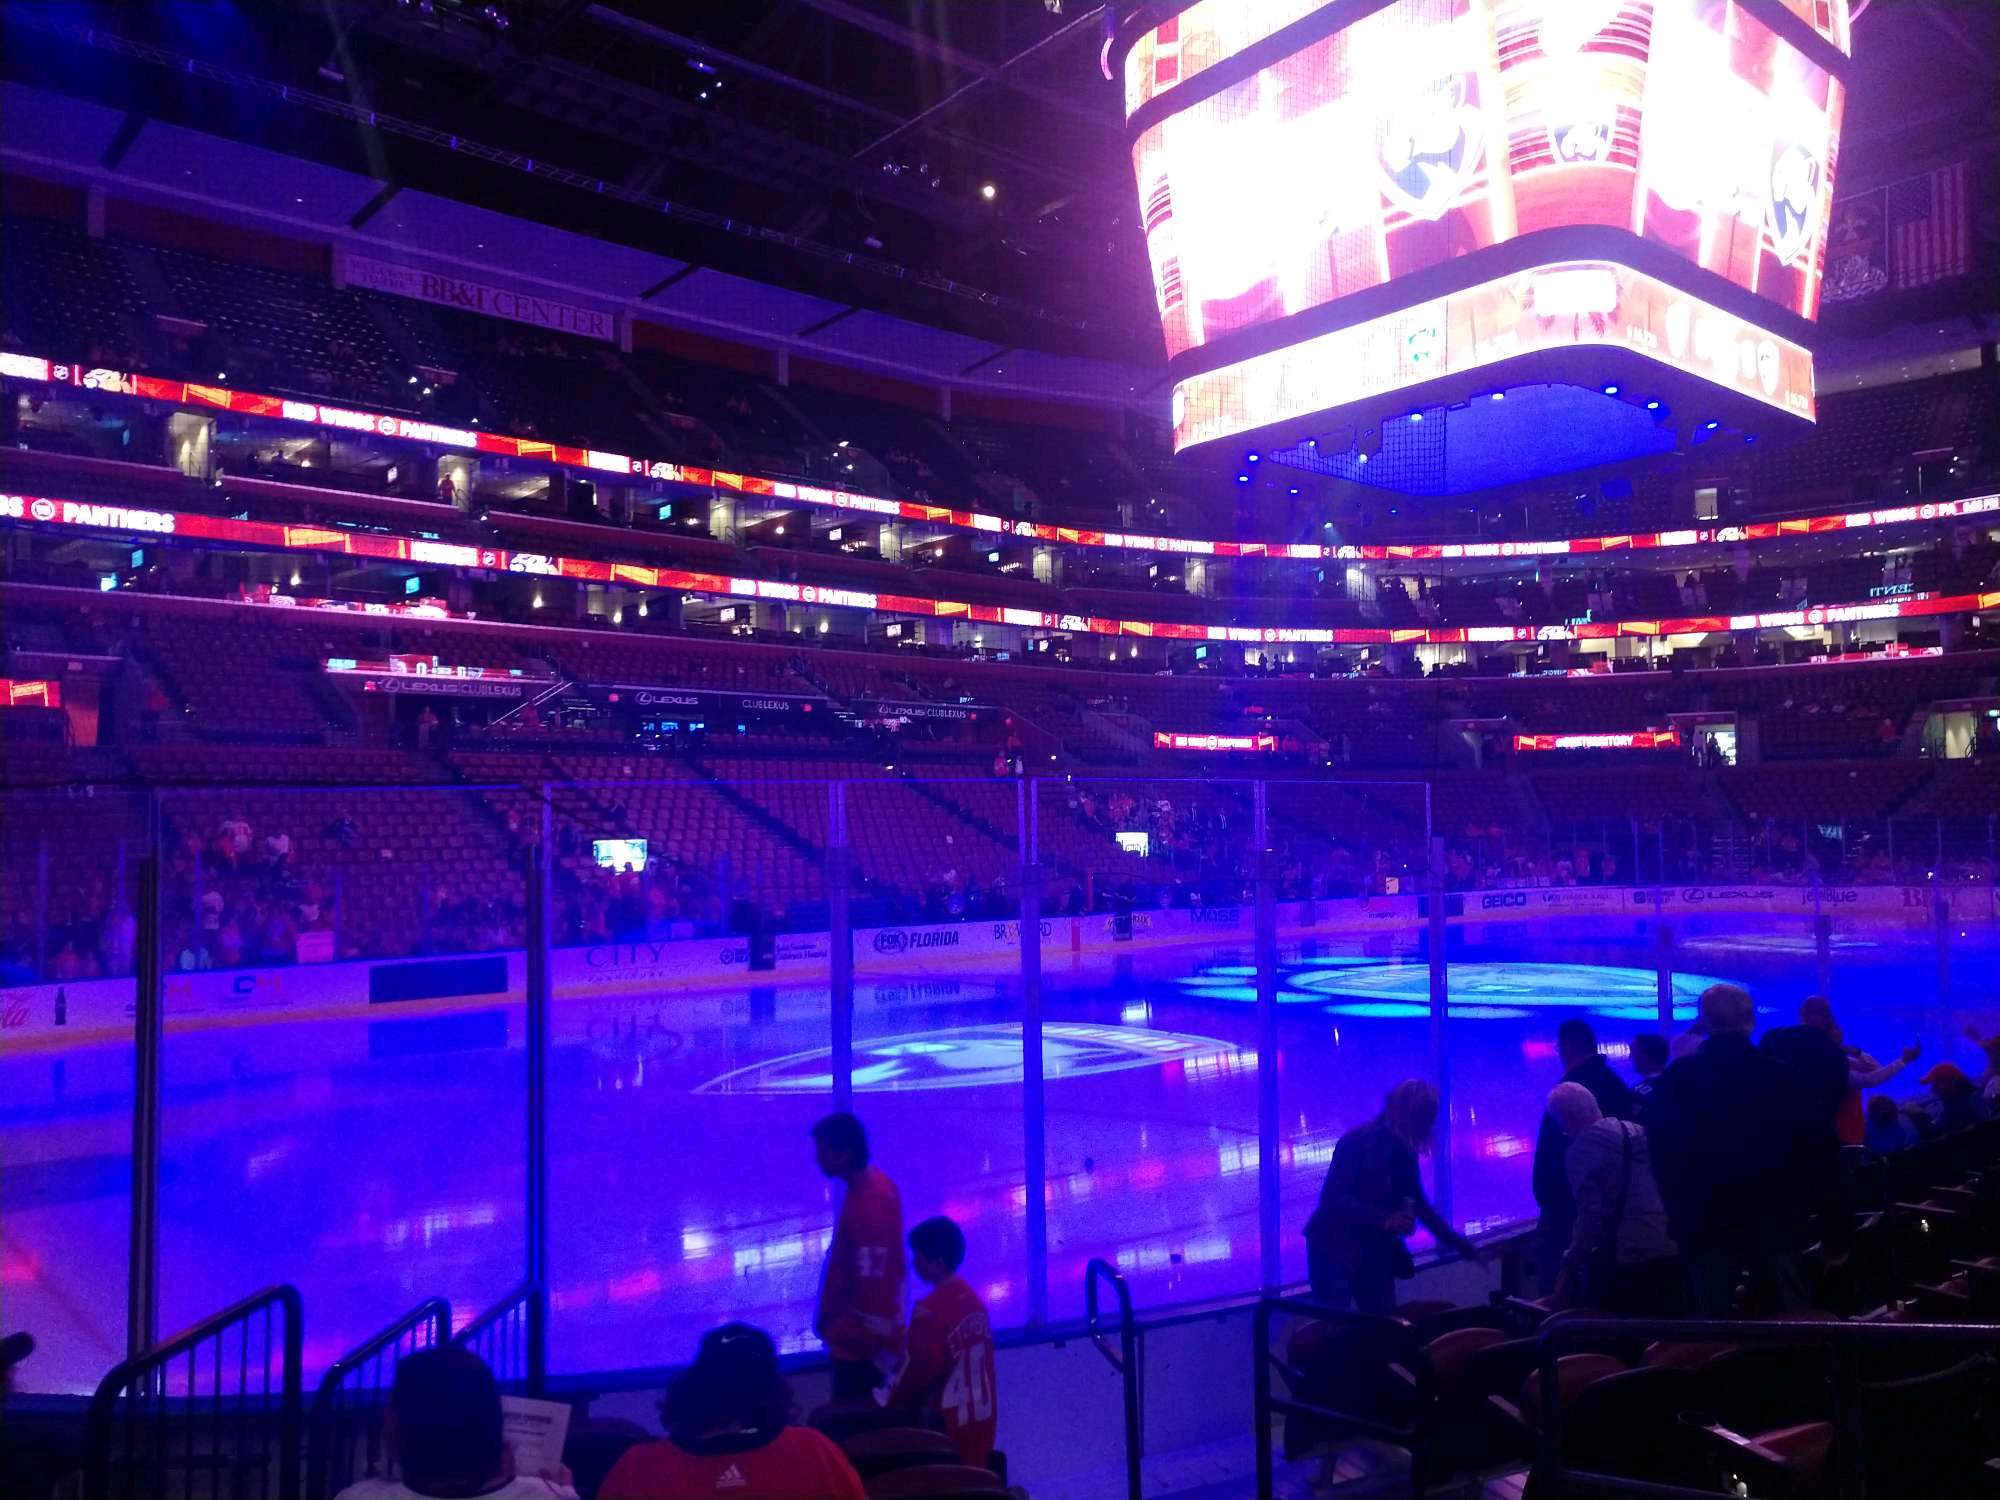 BB&T Center Section 122 Row 8 Seat 4